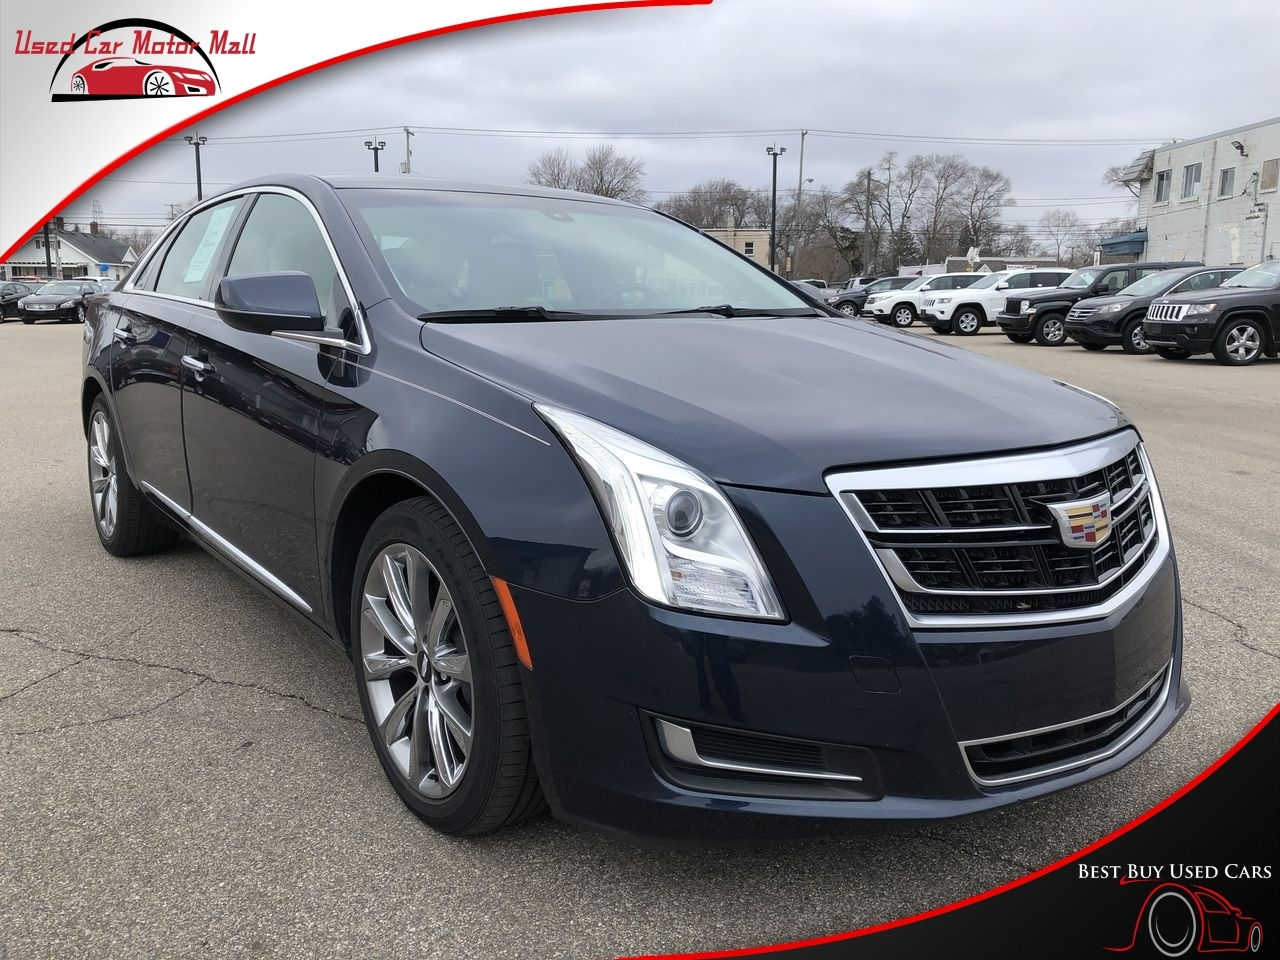 2016 Cadillac XTS FWD, 166544, Photo 1